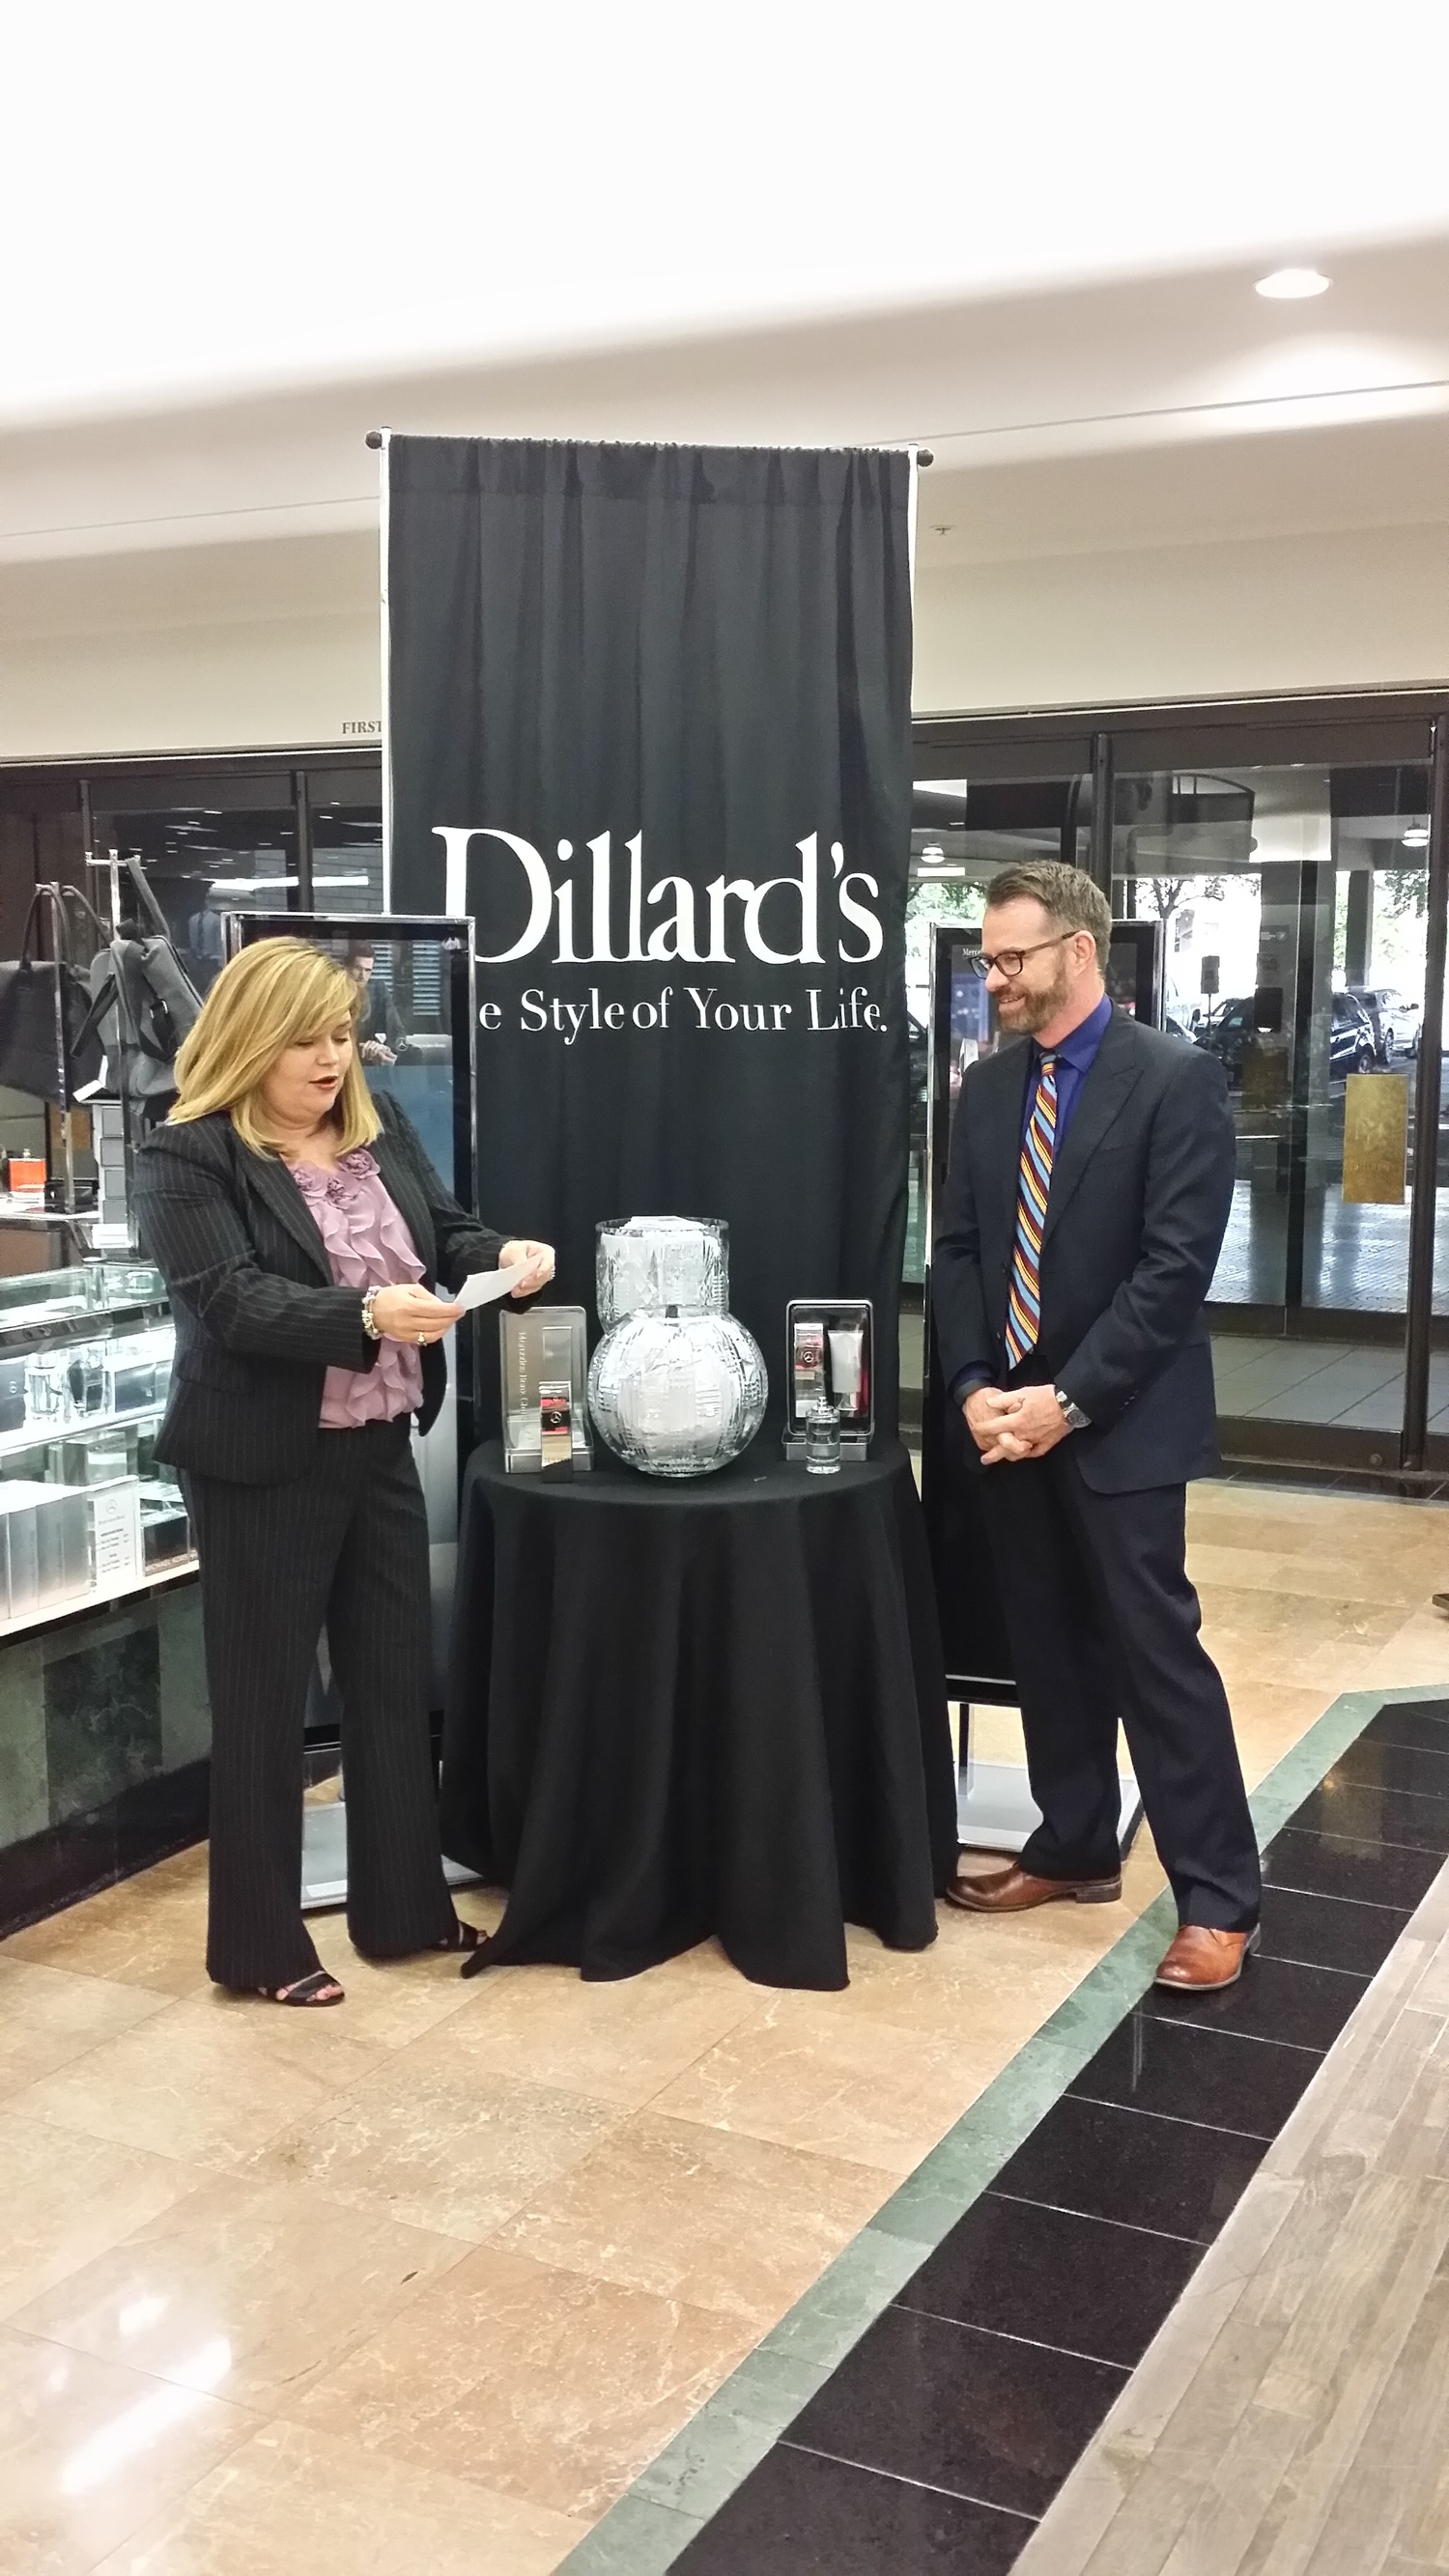 mercedes benz fragrance drives s at dillard s the bf journal andrea toney and mark lantz of dillard s selecting the winners of a 2 year lease